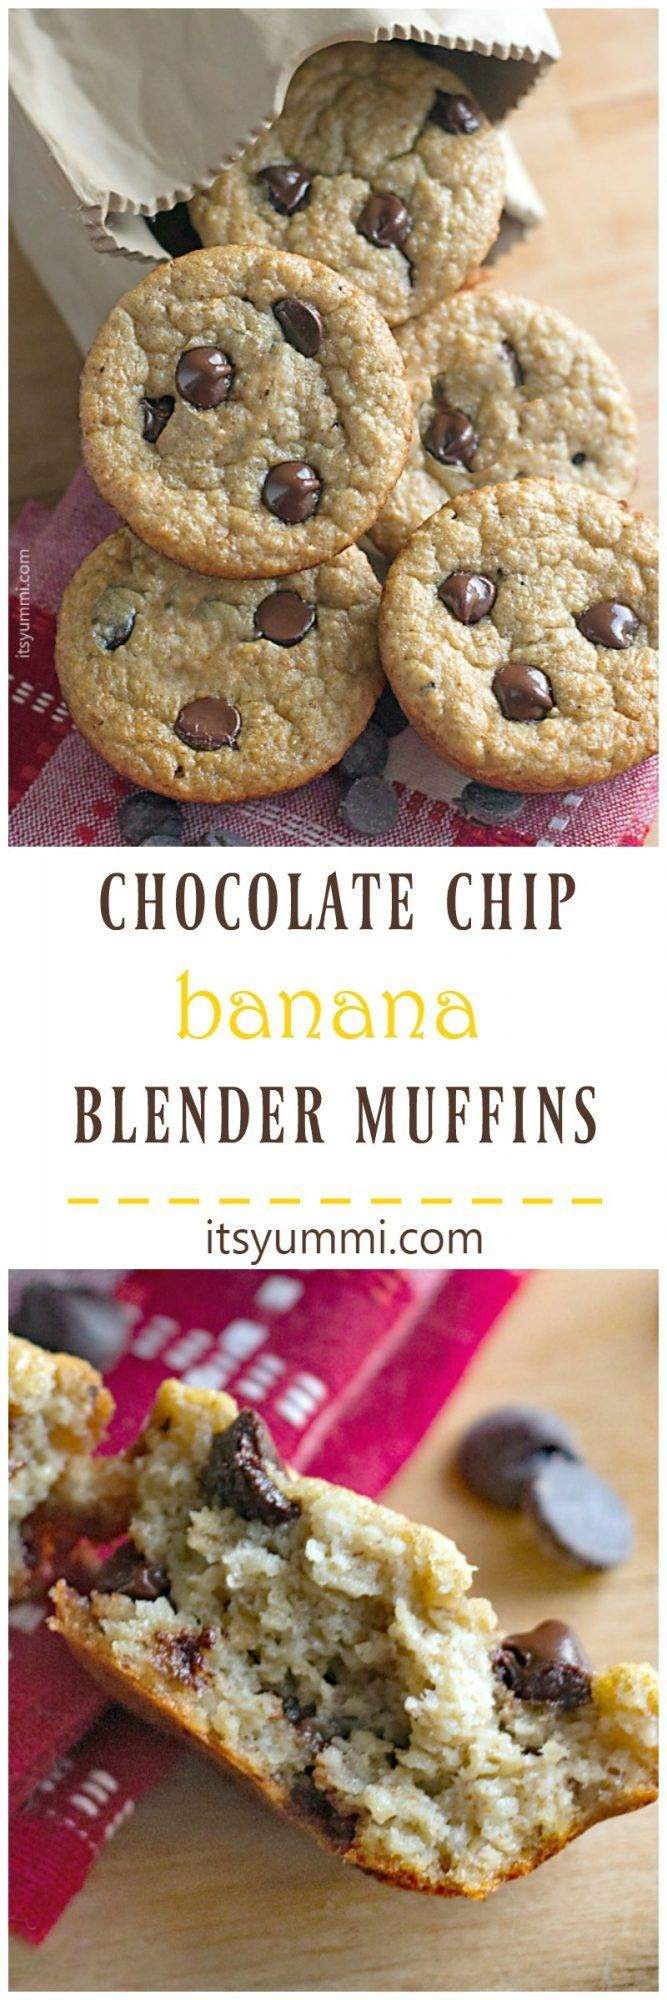 Come on over and grab the recipe to make these gluten free, healthier, chocolate…